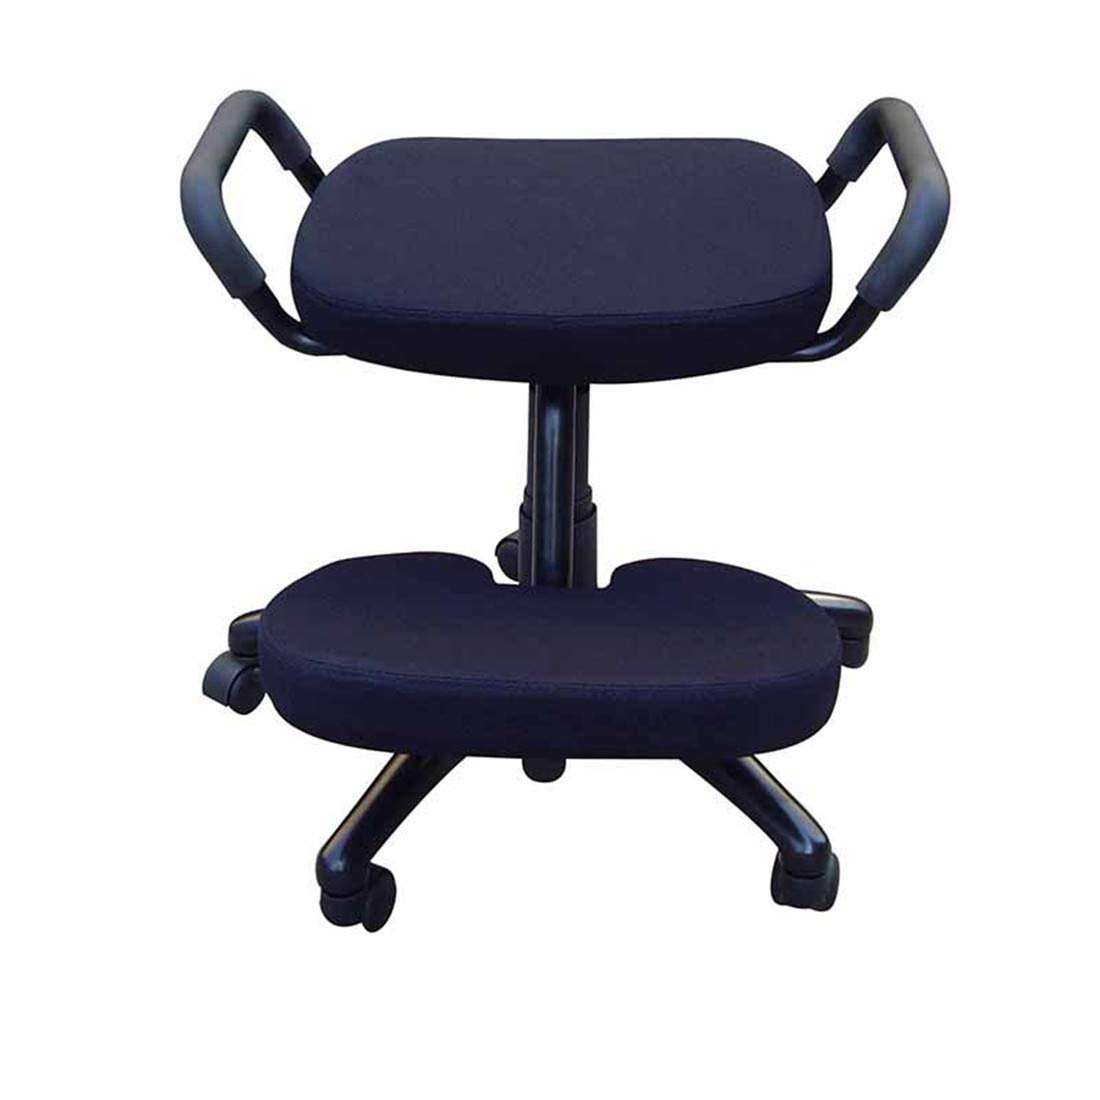 Office Kneeling Chairs Ergonomically Designed Knee Adjustable with Handle Ergonomic Posture Helps Prevent Coccyx Pain by AJ ZJ Kneeling Chairs